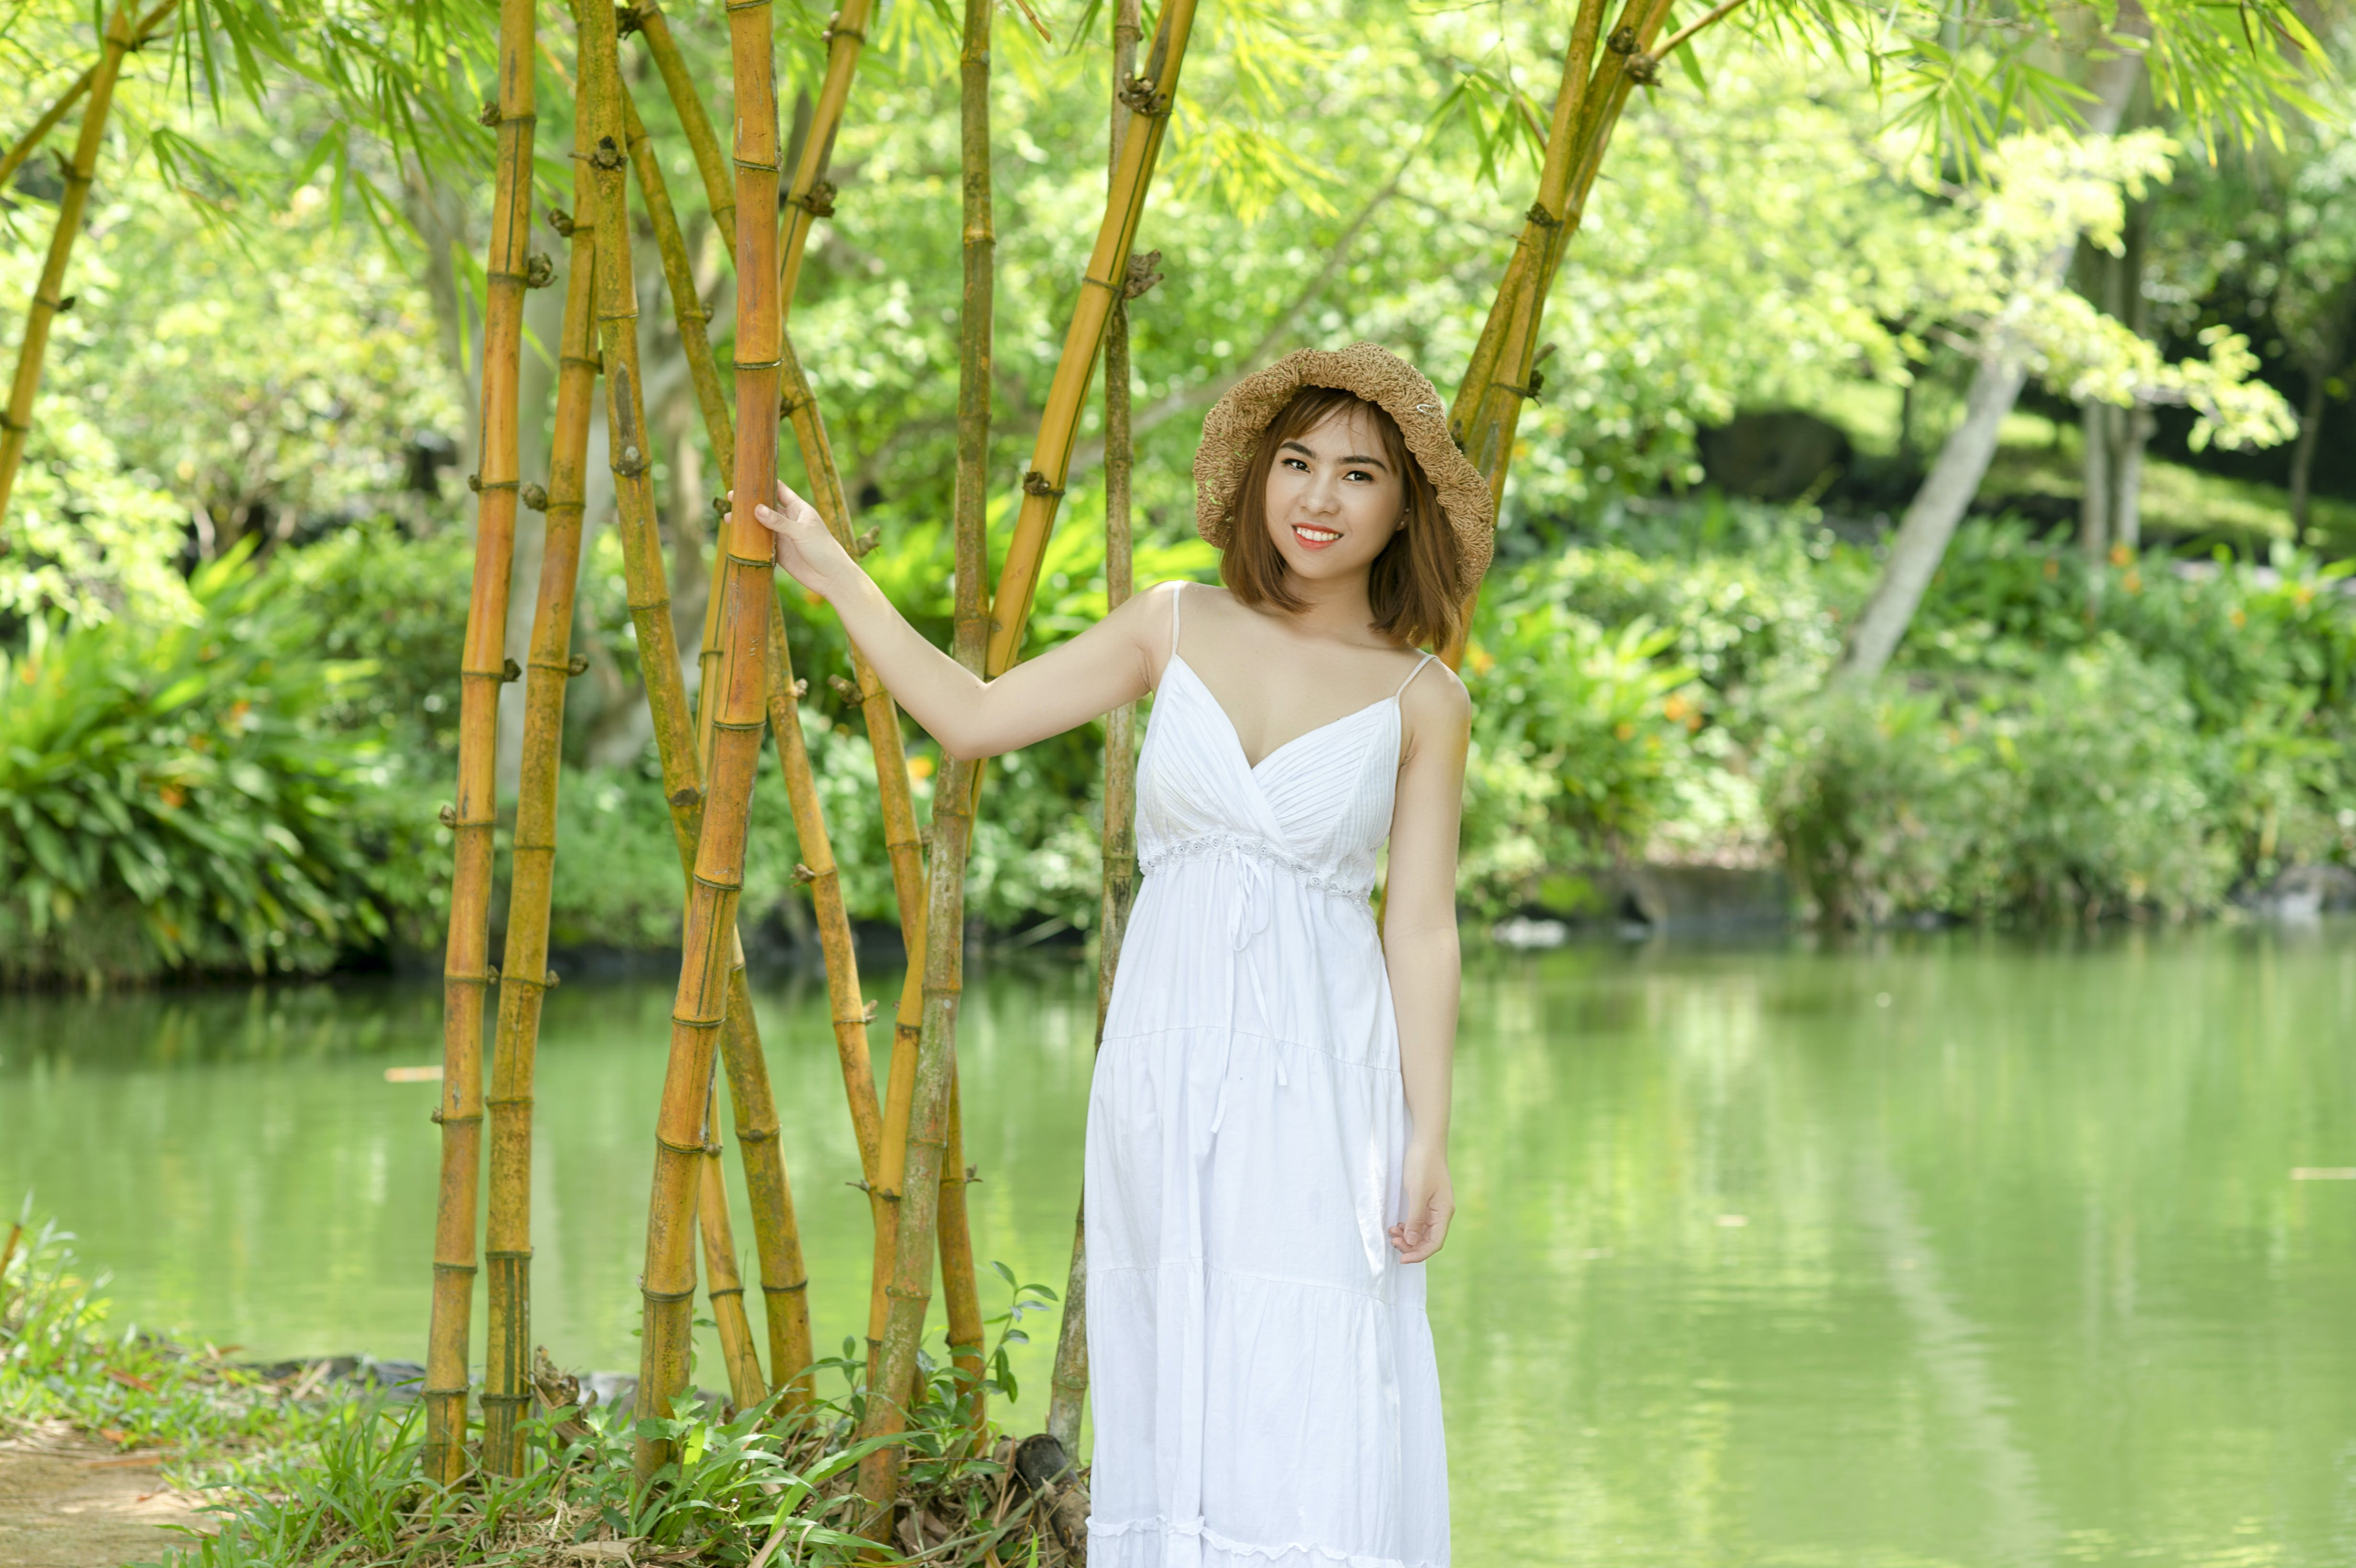 Woman in White Spaghetti Strap Dress Holding on Bamboo Tree Near Body of Water